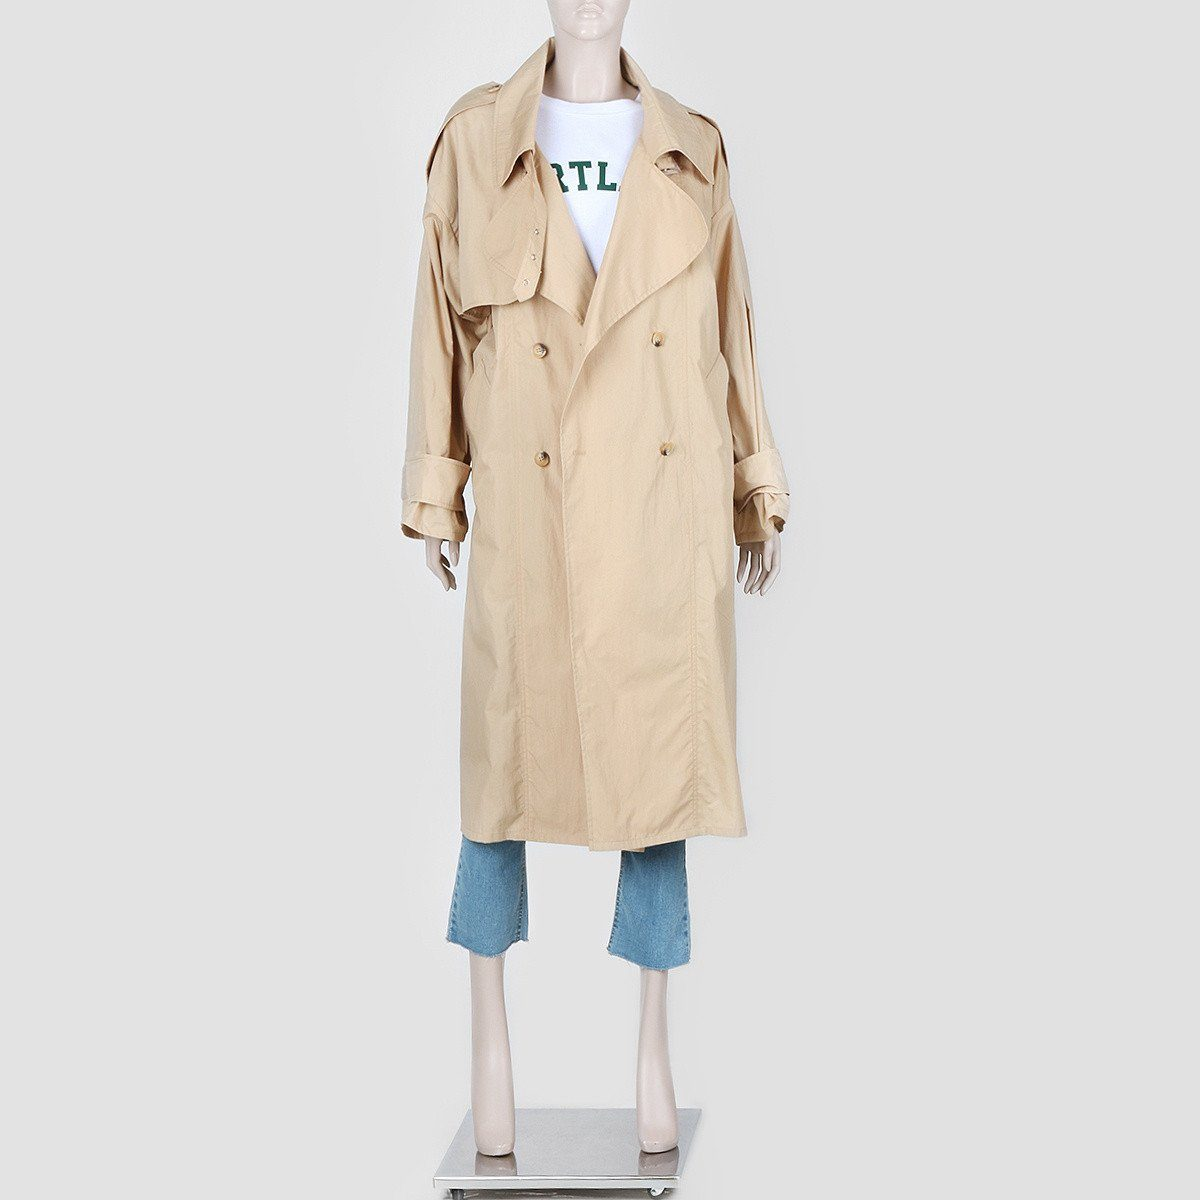 Siero Wear, Over-fit long trench coat, women clothes, Hot Sale Product - Leez Department Store